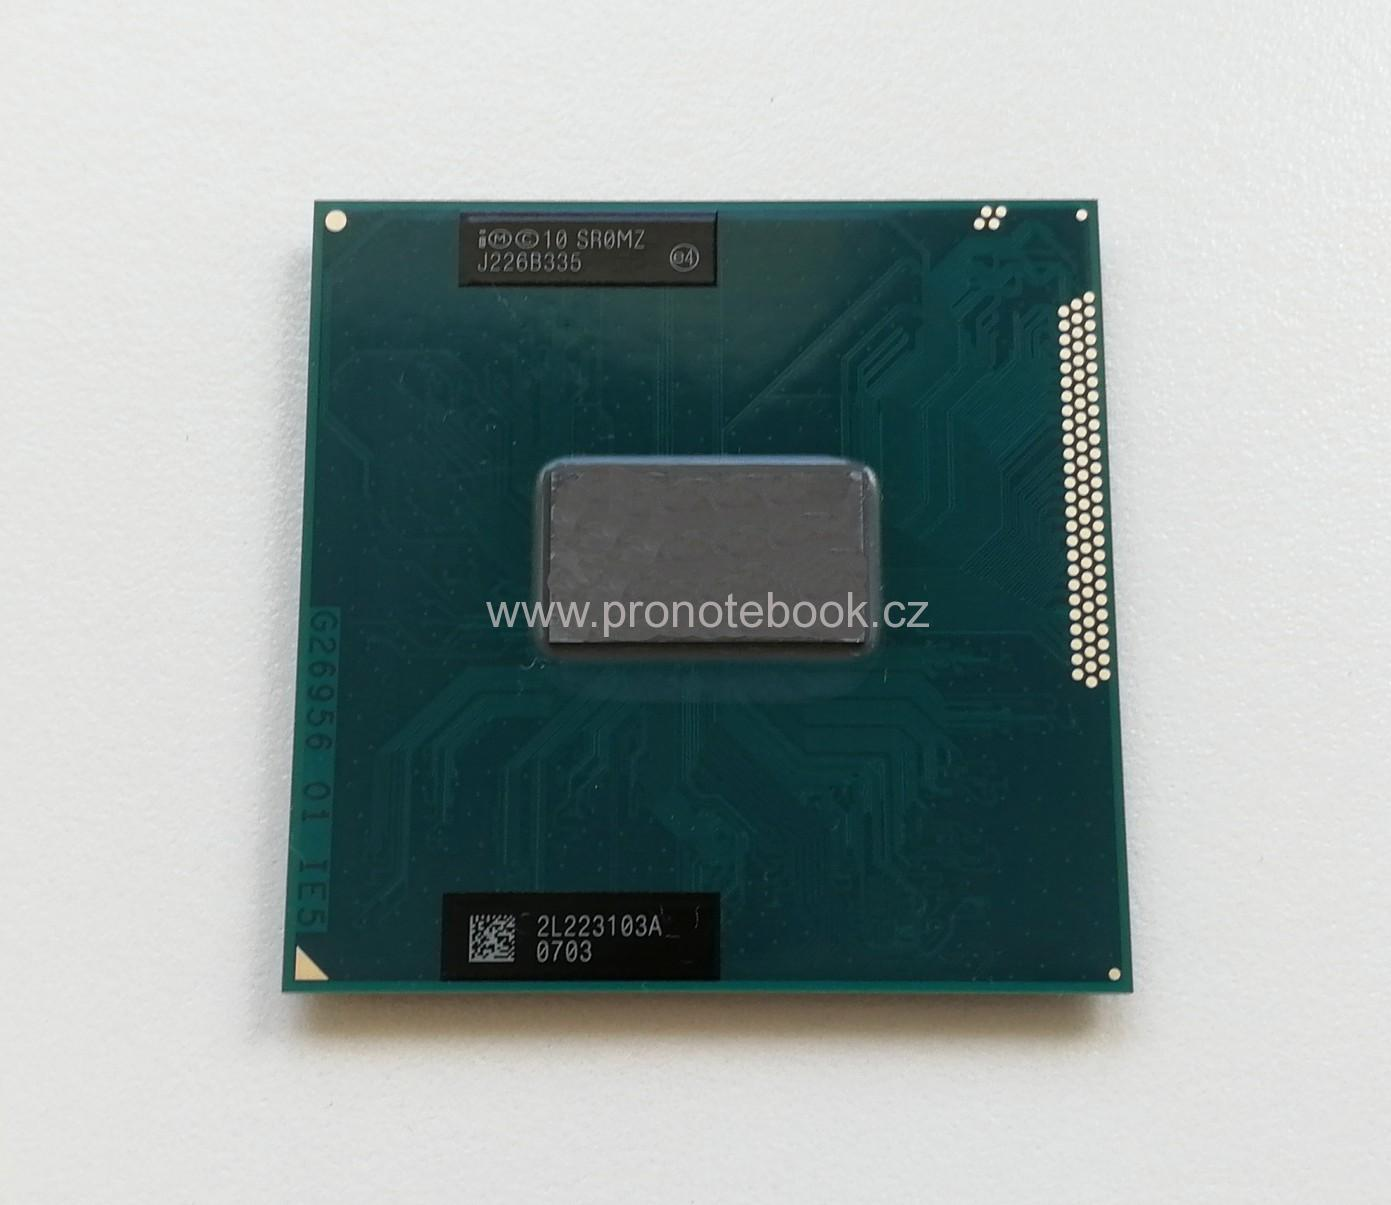 Intel Core i5-3210M, 3MB, 2.5 - 3.1 GHz, PGA988B, AW8063801032301, SR0MZ